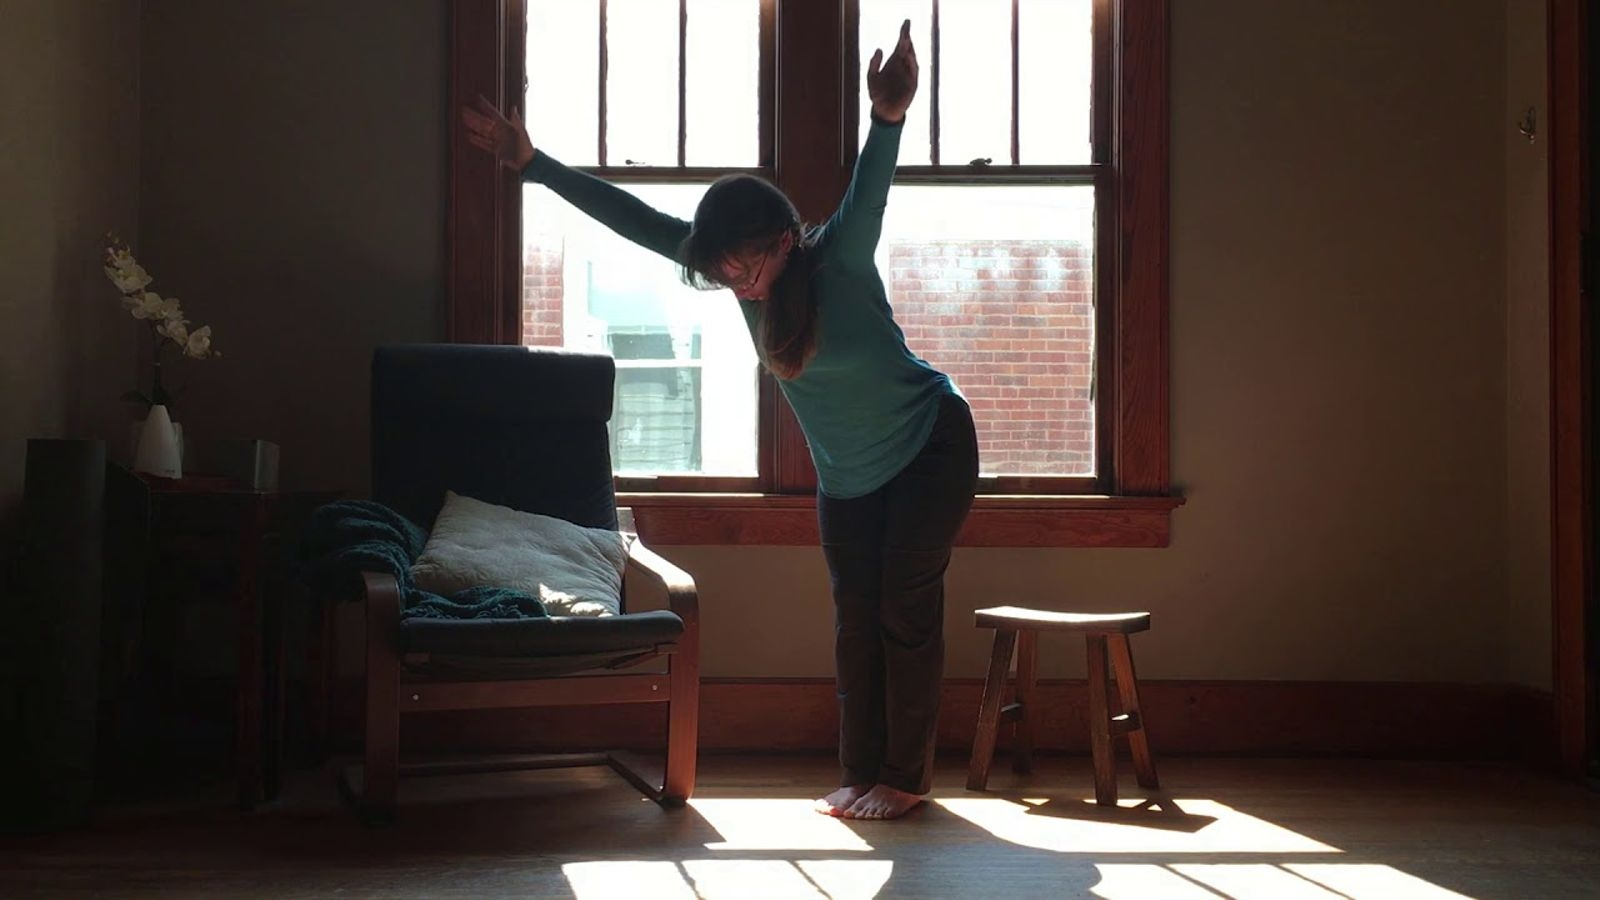 Short Morning Practice - In about fifteen minutes you'll get a complete yoga and meditation practice to help you feel awake, vibrant and grounded for the day ahead. Perfect for beginners.